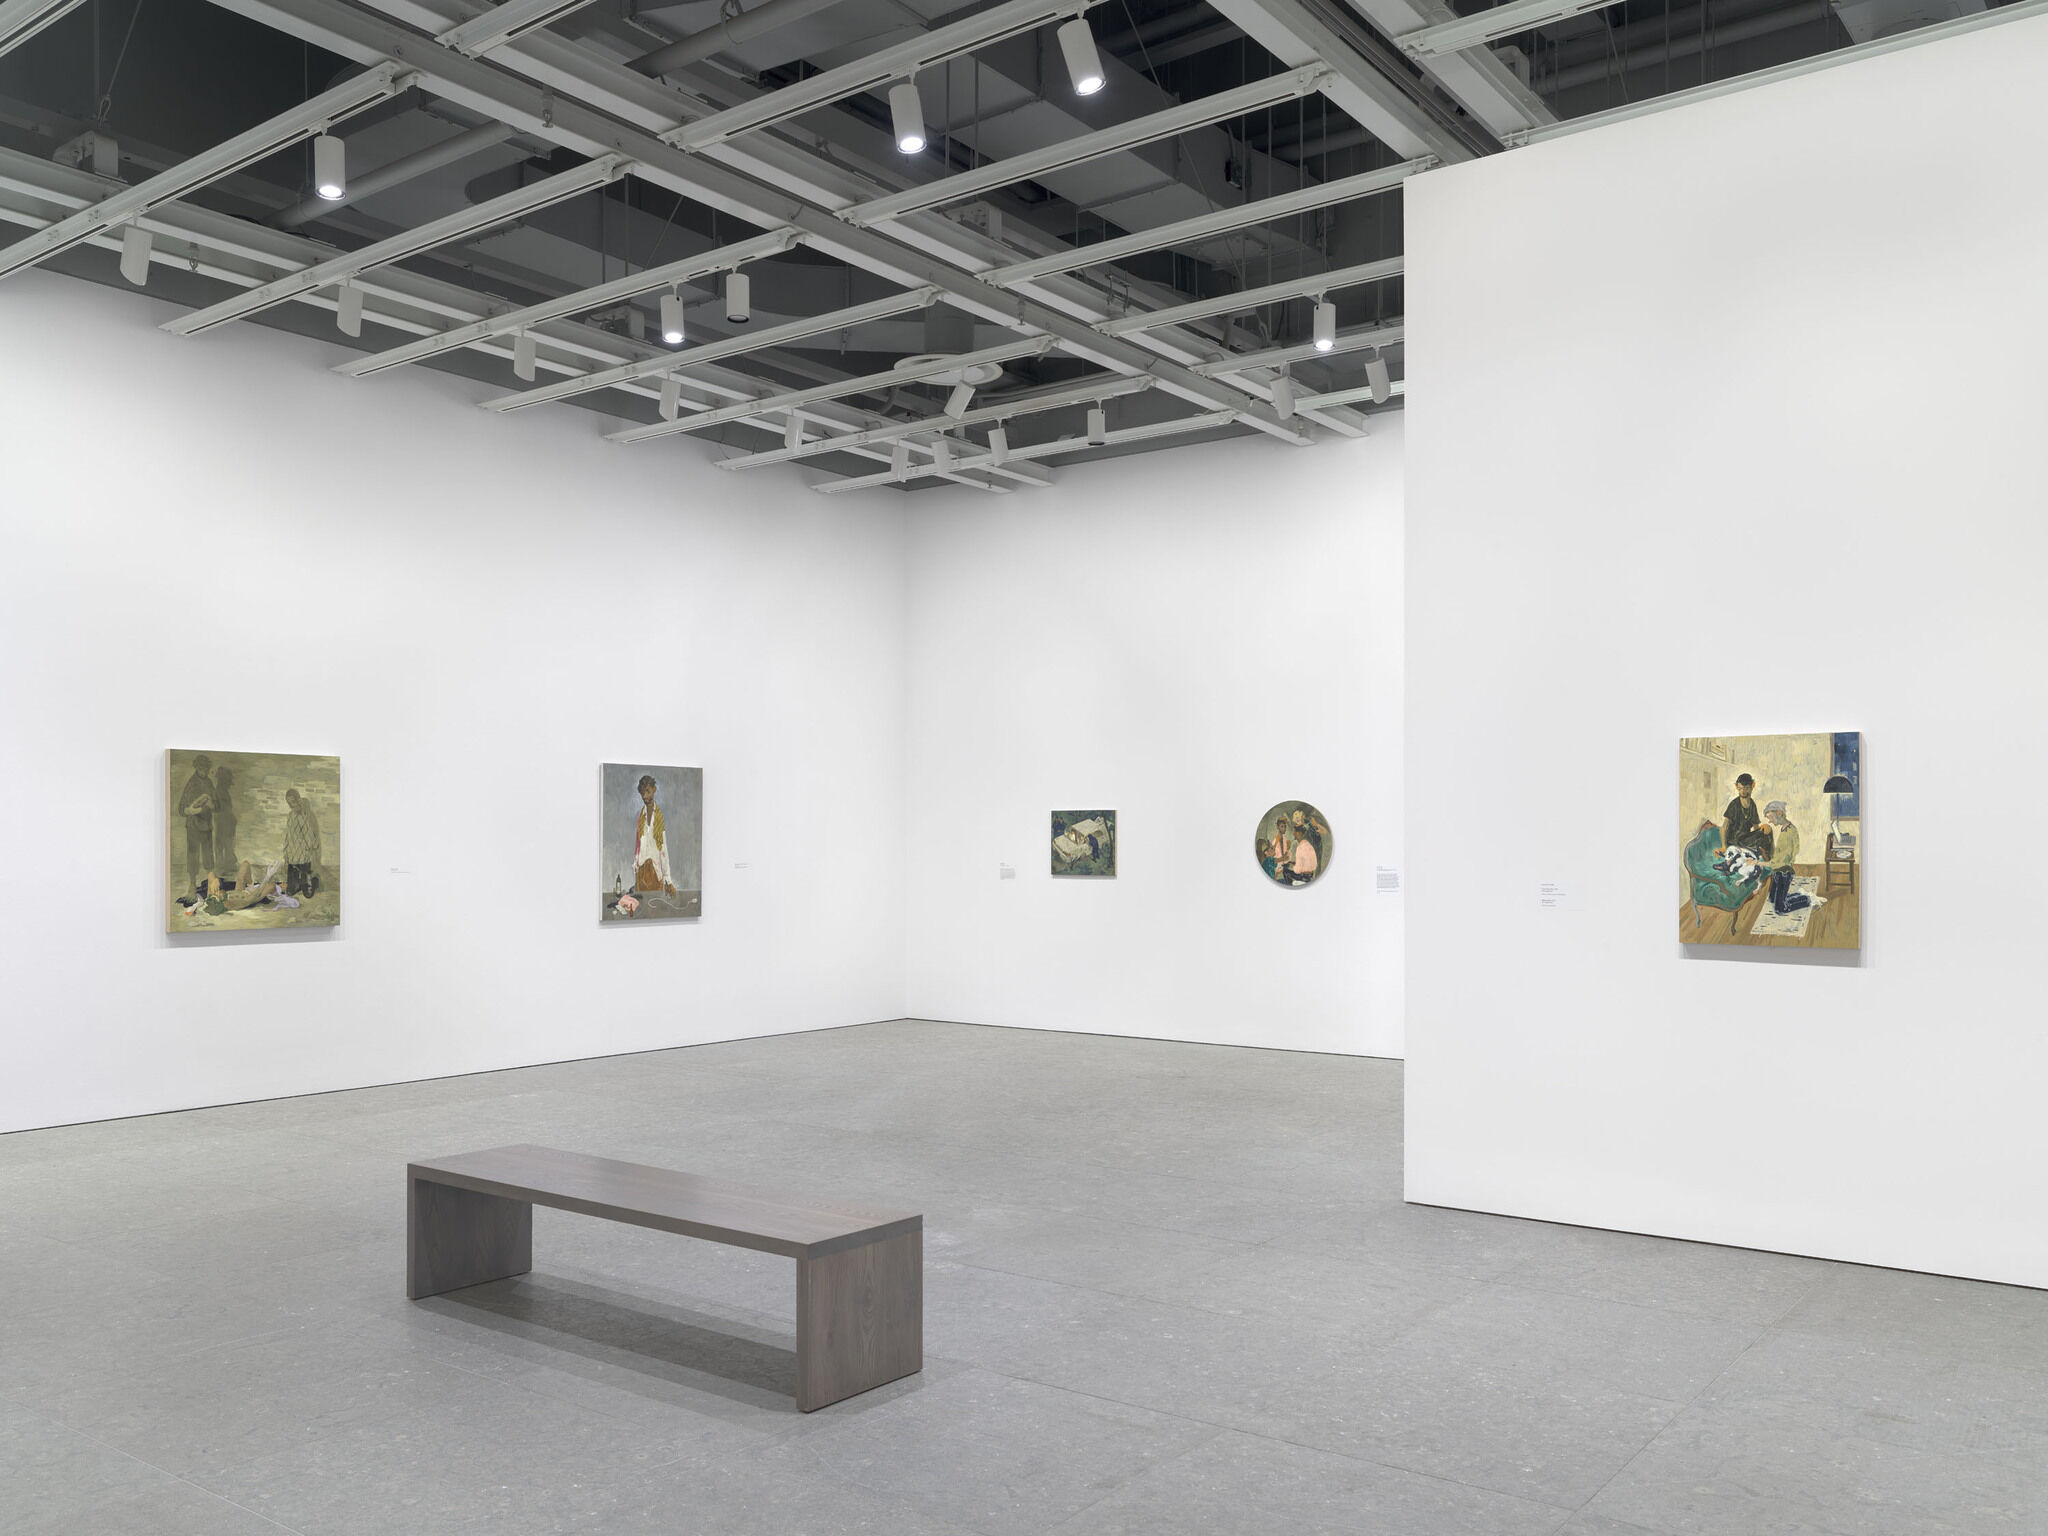 A gallery with a bench and art on the walls.